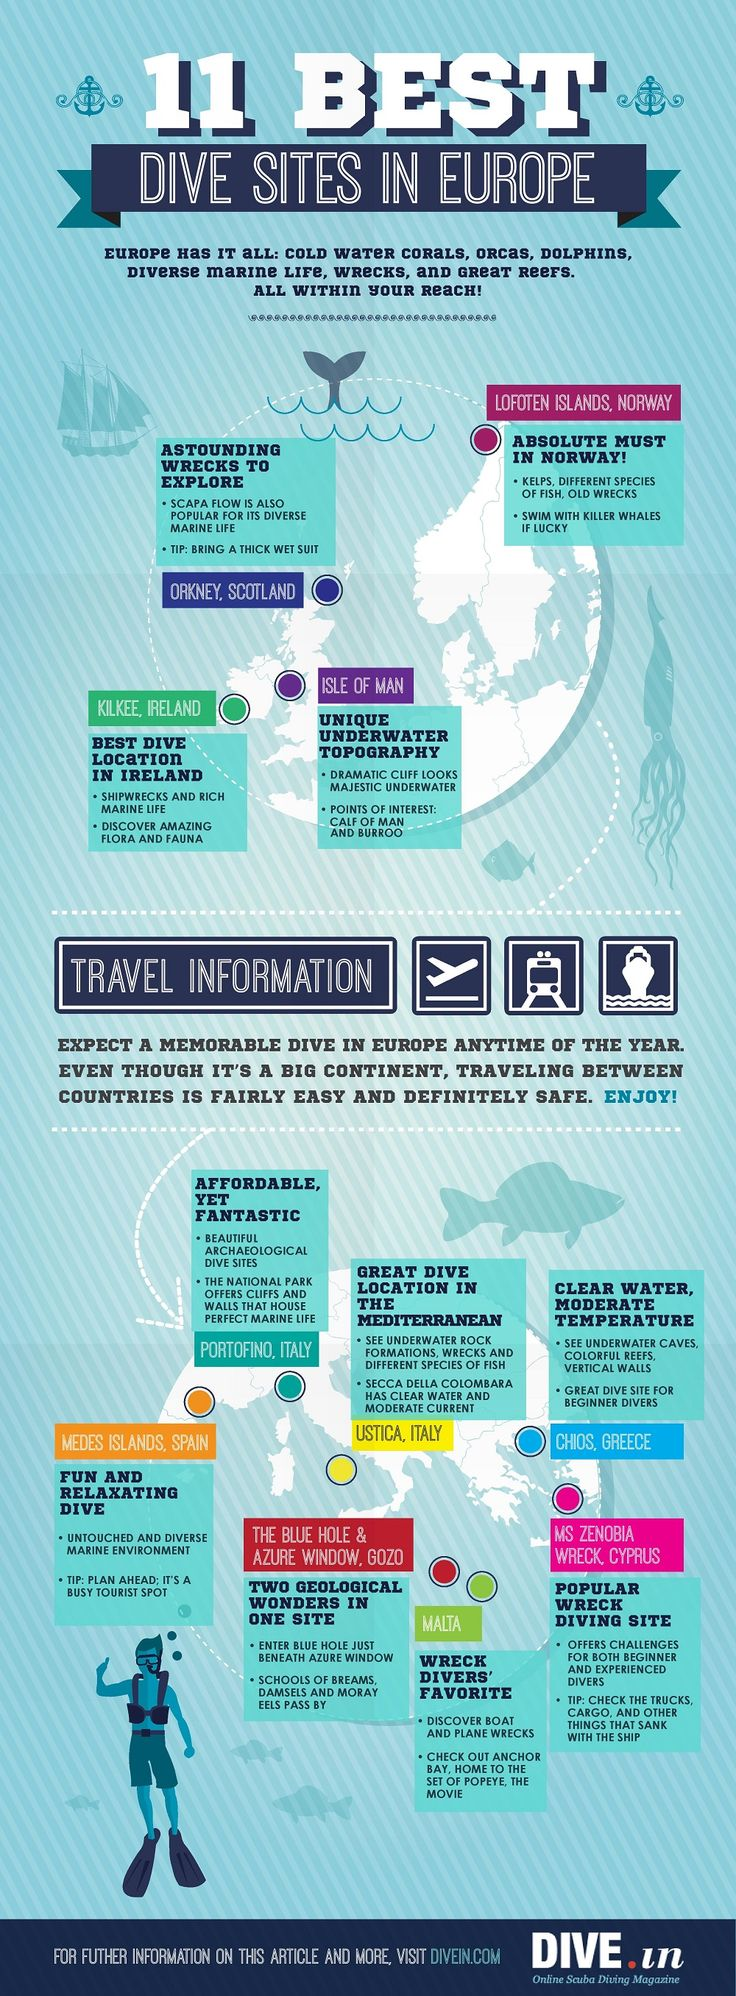 Scuba diving in Europe Infographic